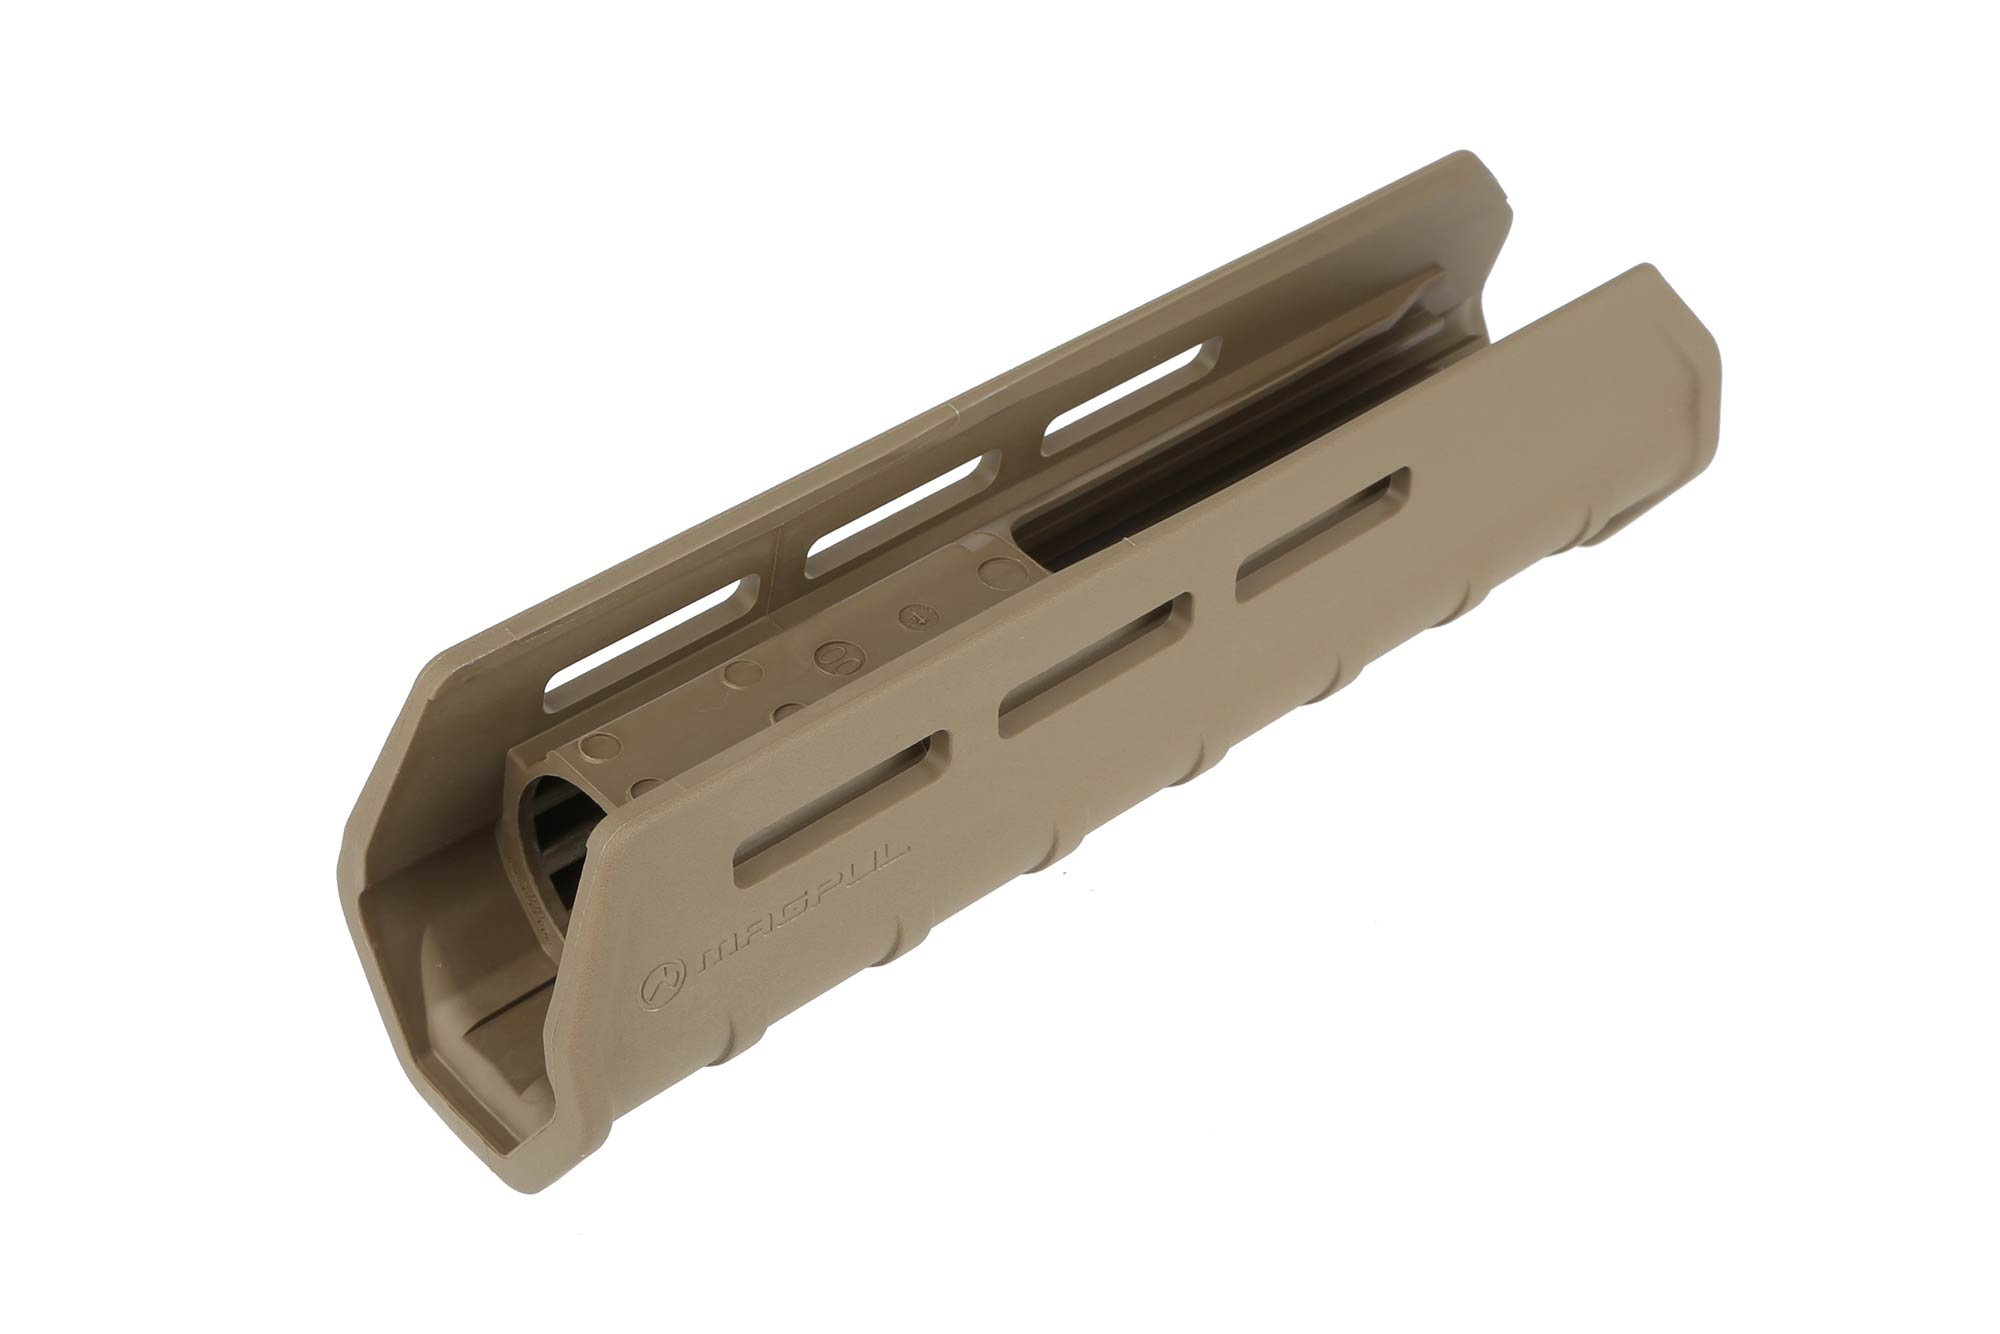 The Mossberg 590 Magpul Forend FDE features M-LOK attachment slots